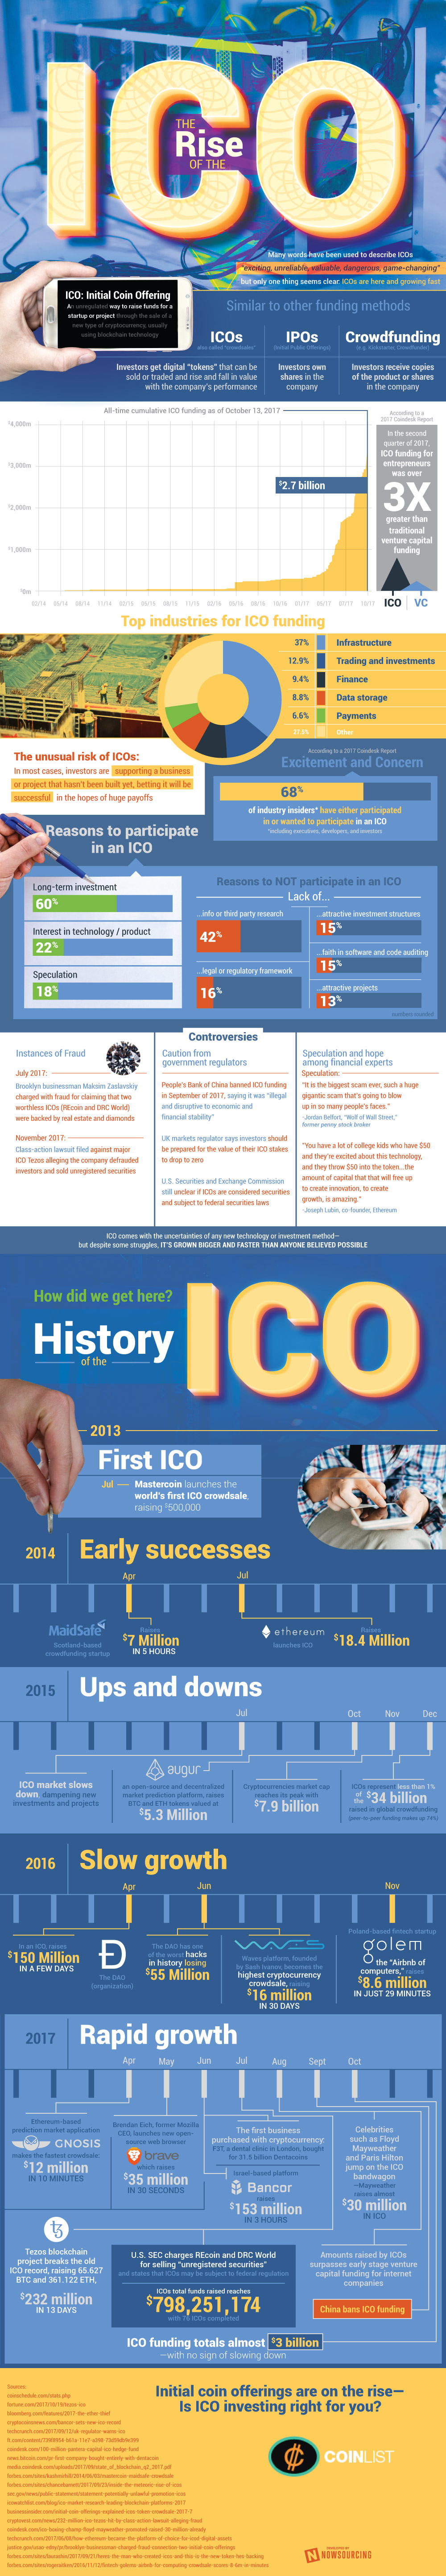 The Rise Of The ICO